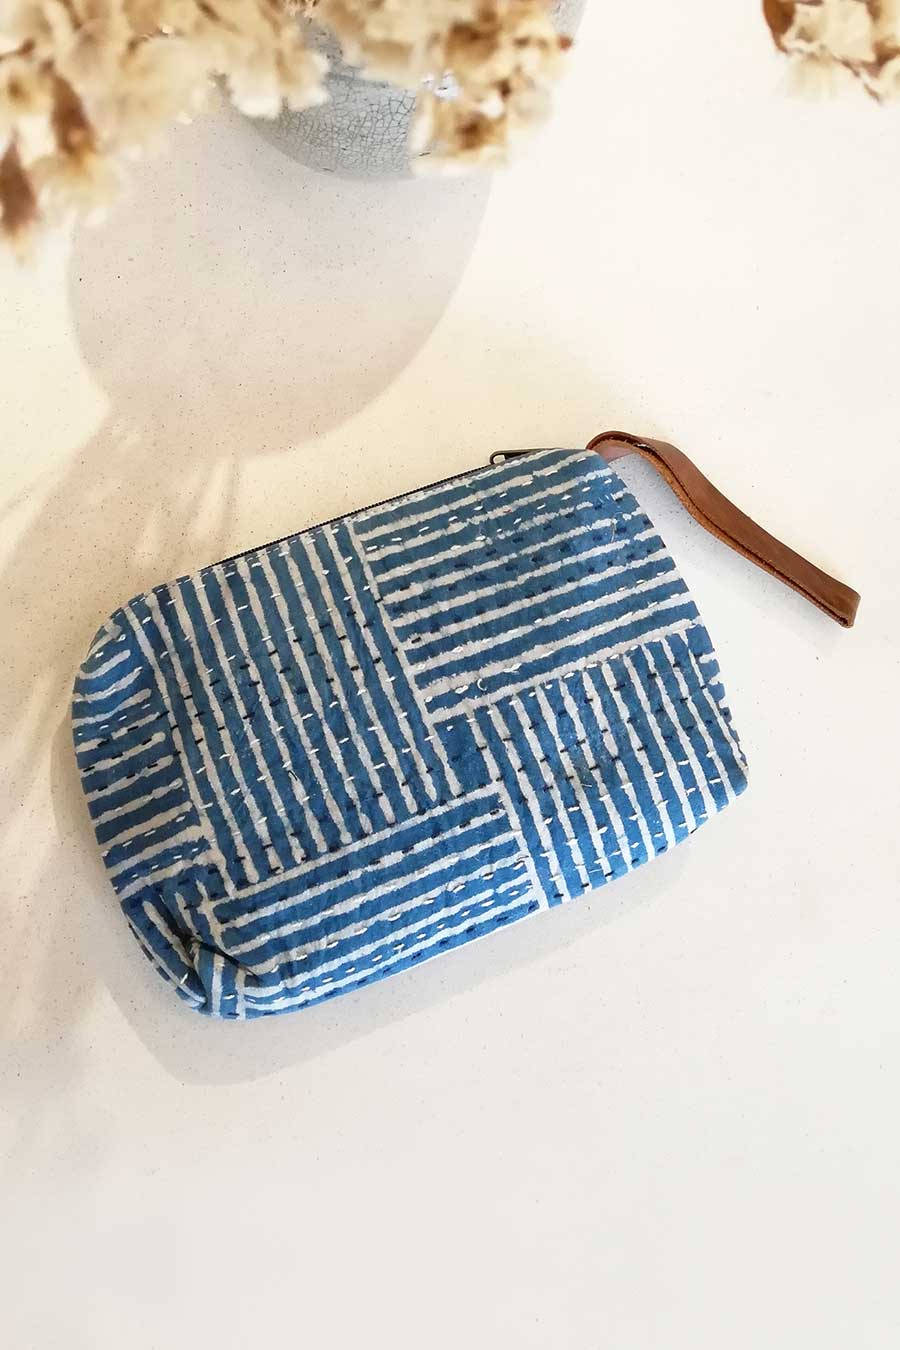 Indigo Block Print Boho Clutch Bag